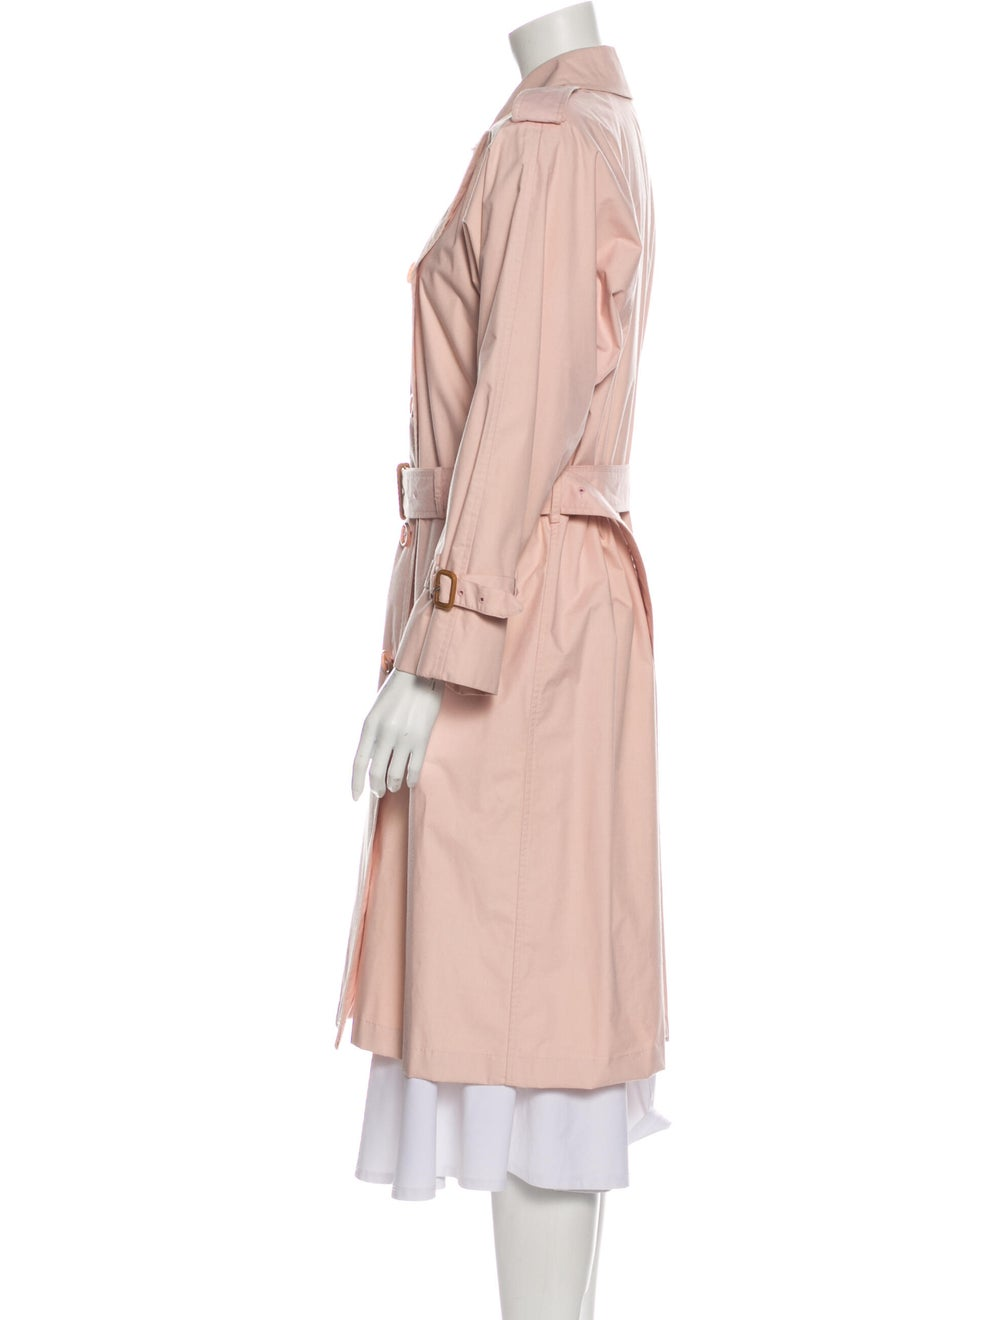 Burberry Vintage Trench Coat Pink - image 2